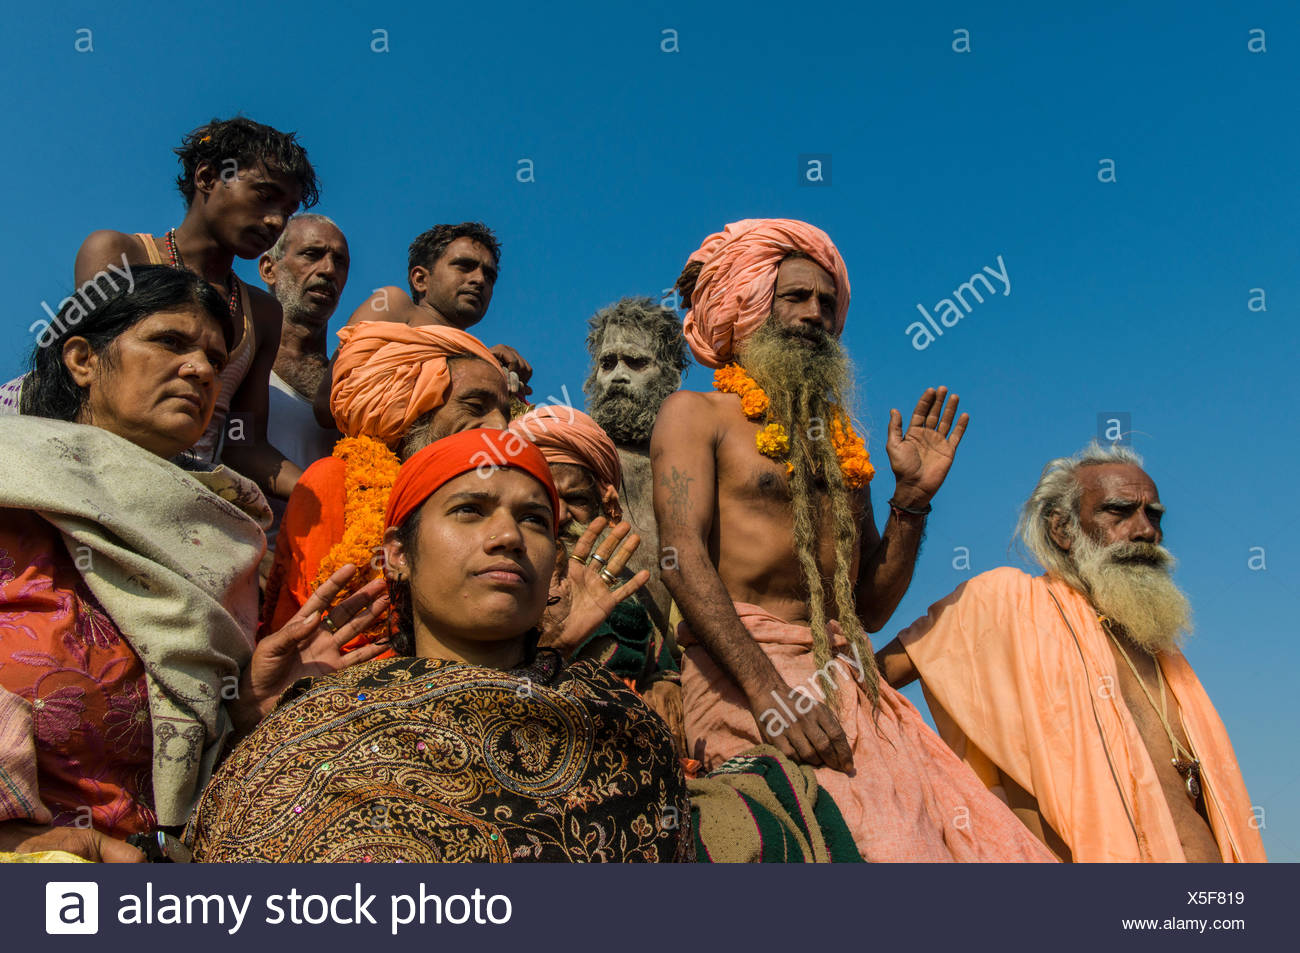 Group of sadhus participating in the procession of Shahi Snan, the royal bath, during Kumbha Mela festival, Allahabad - Stock Image